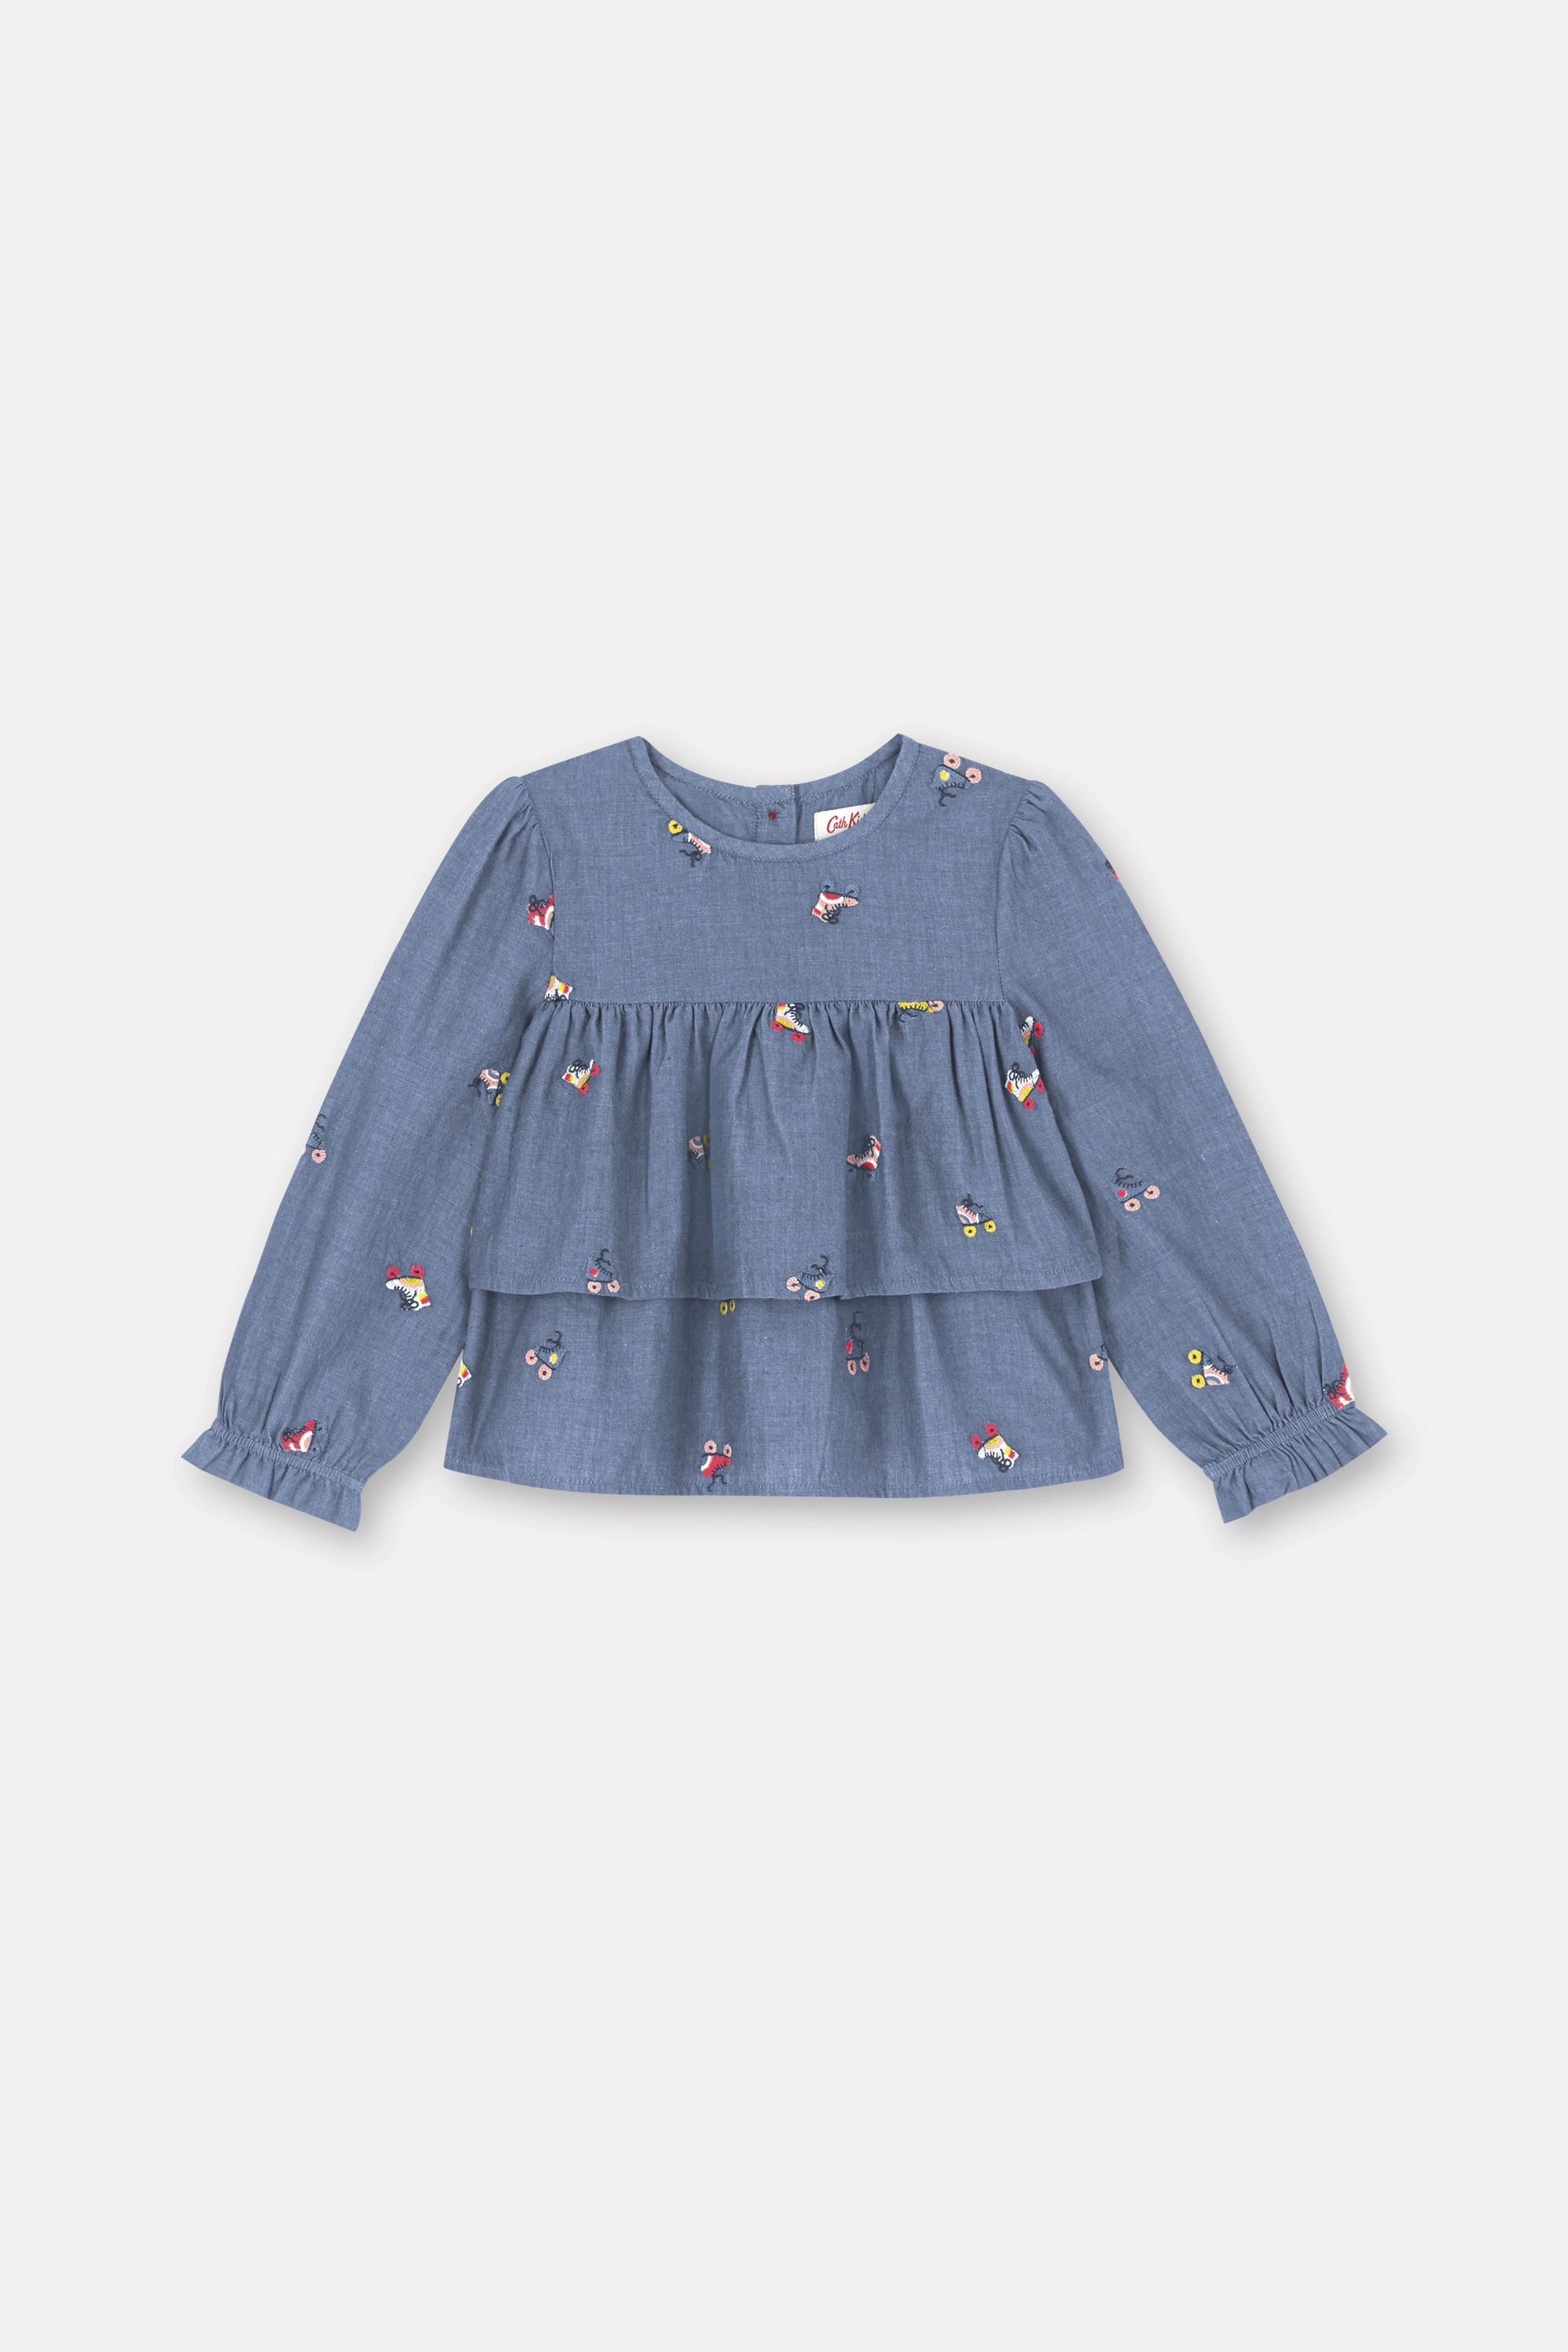 Cath Kidston Kids Embroidered Chambray Tierred Top, Rollerskates, 100% Cotton Chambray, 5-6 yr